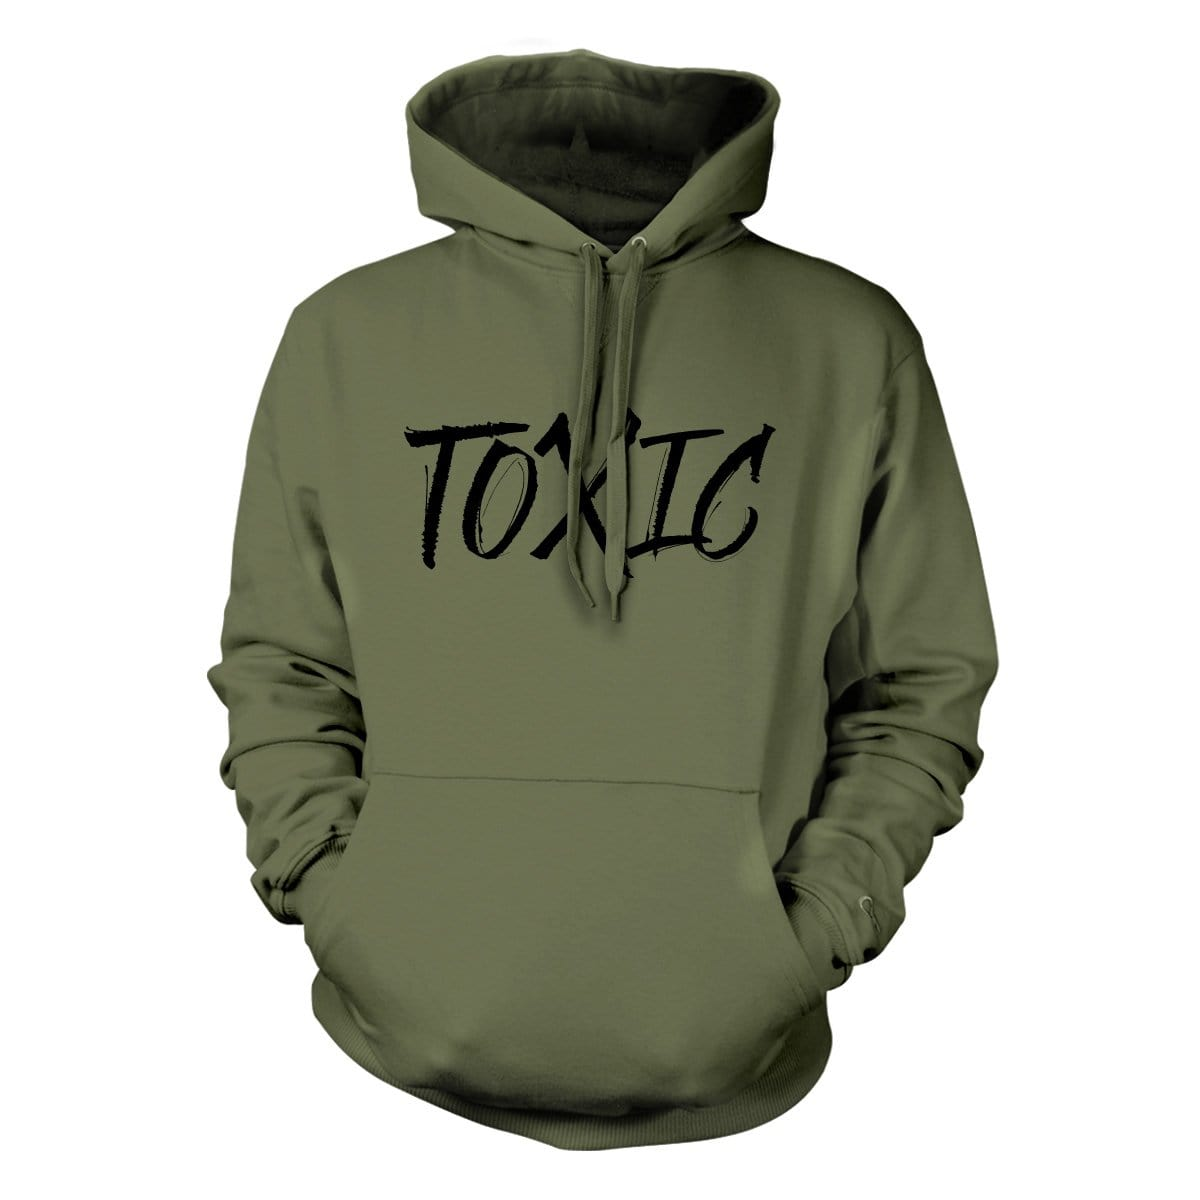 Toxic Hoodie - Military Green - Hoodies - Pipe Hitters Union